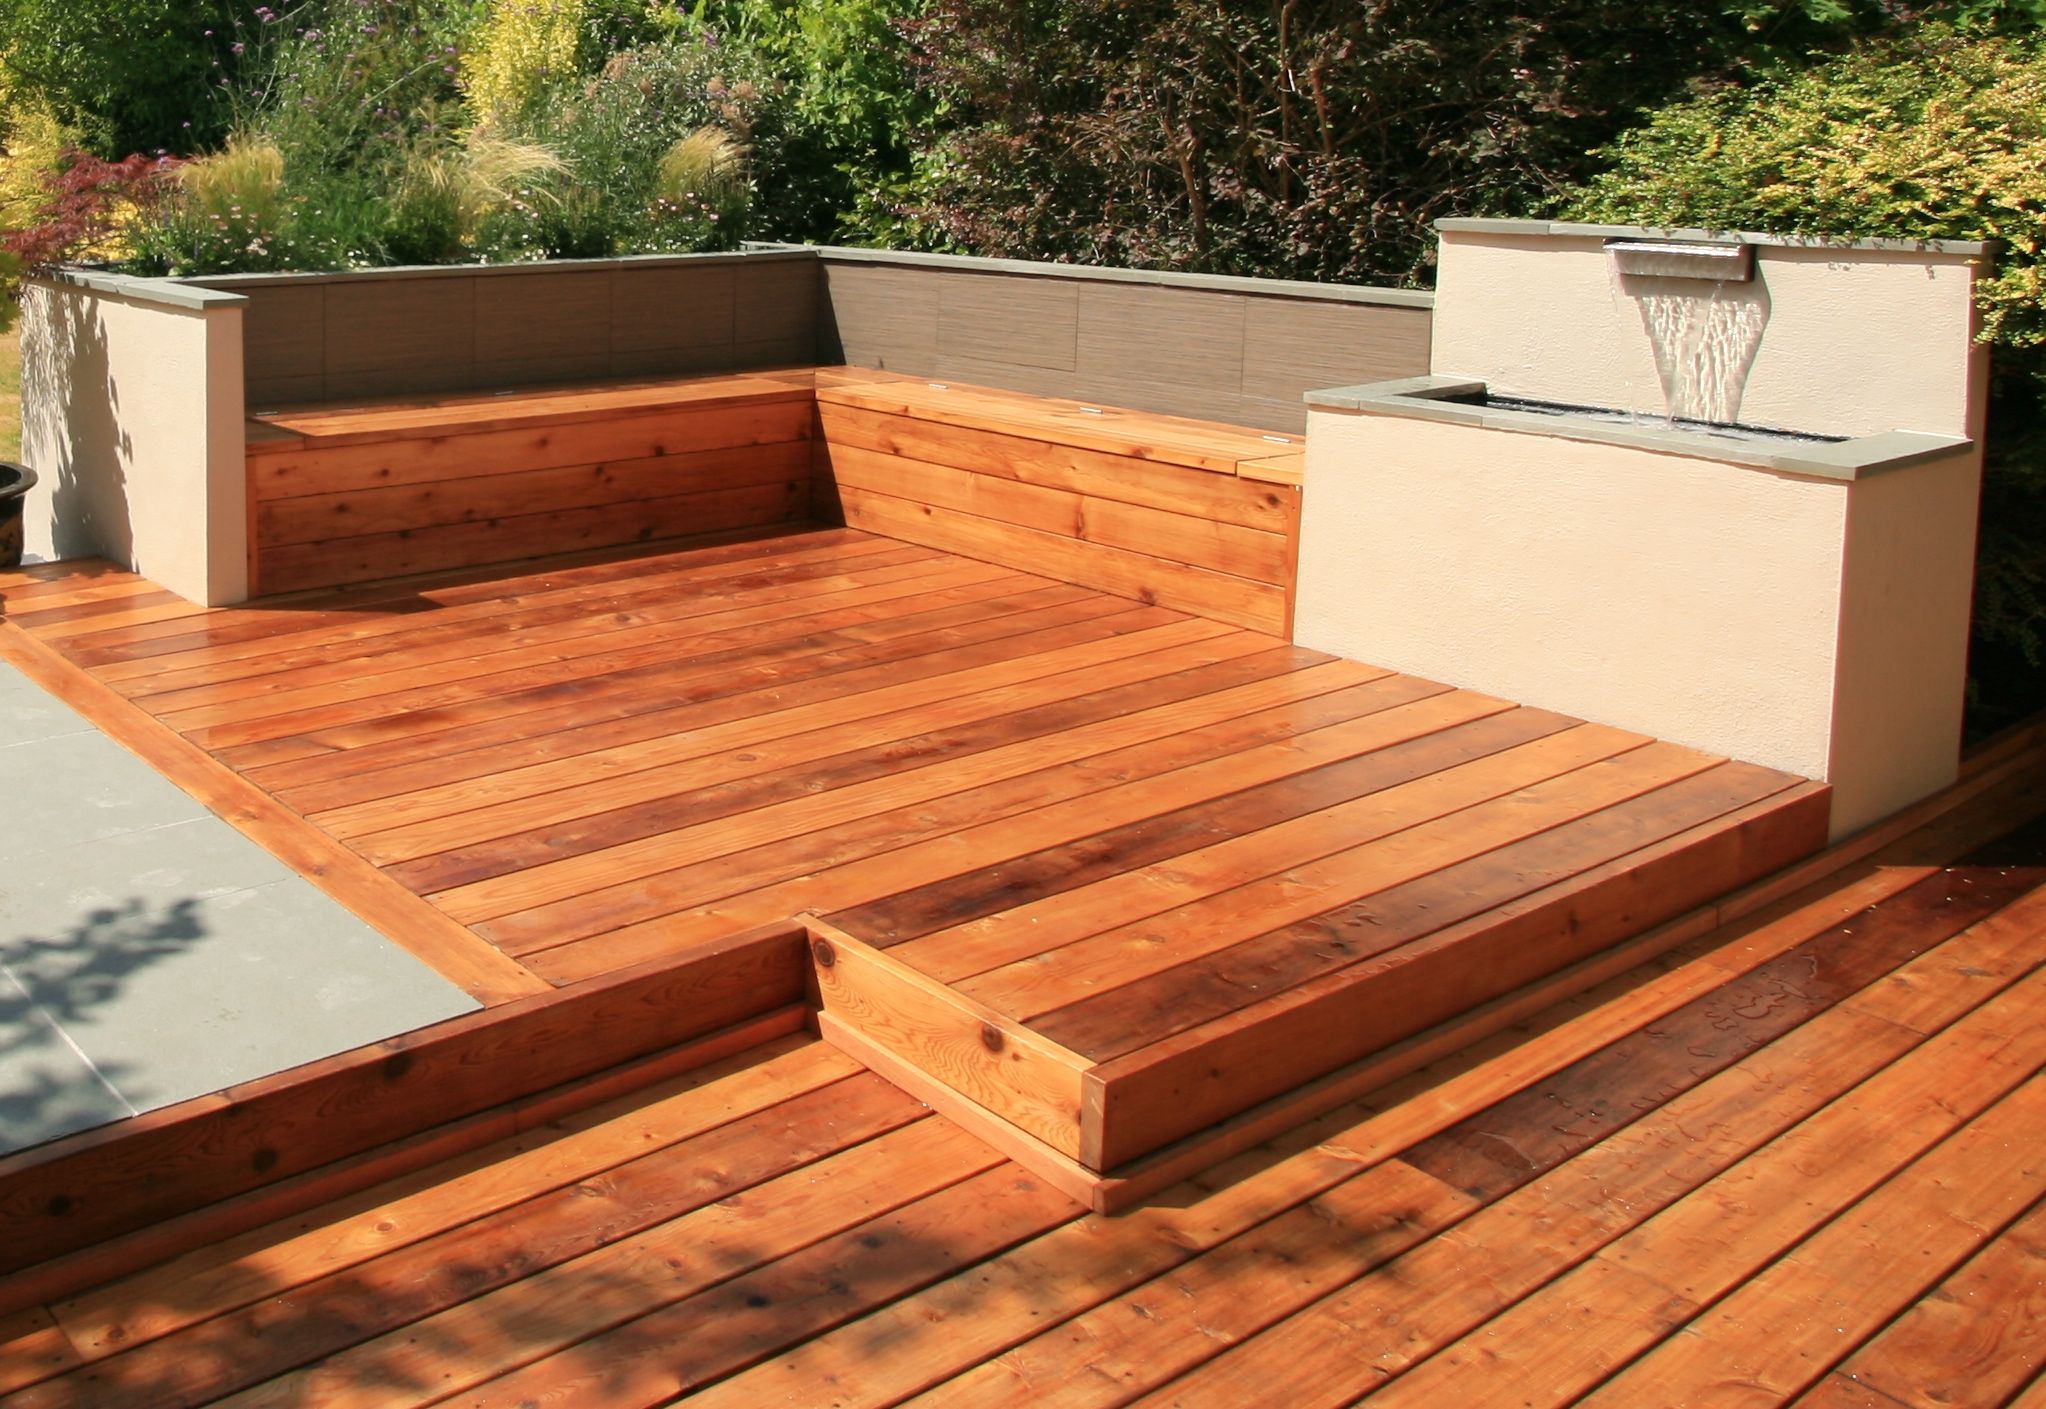 How to Prevent Wood Decking From Becoming Slippery - Blog ...